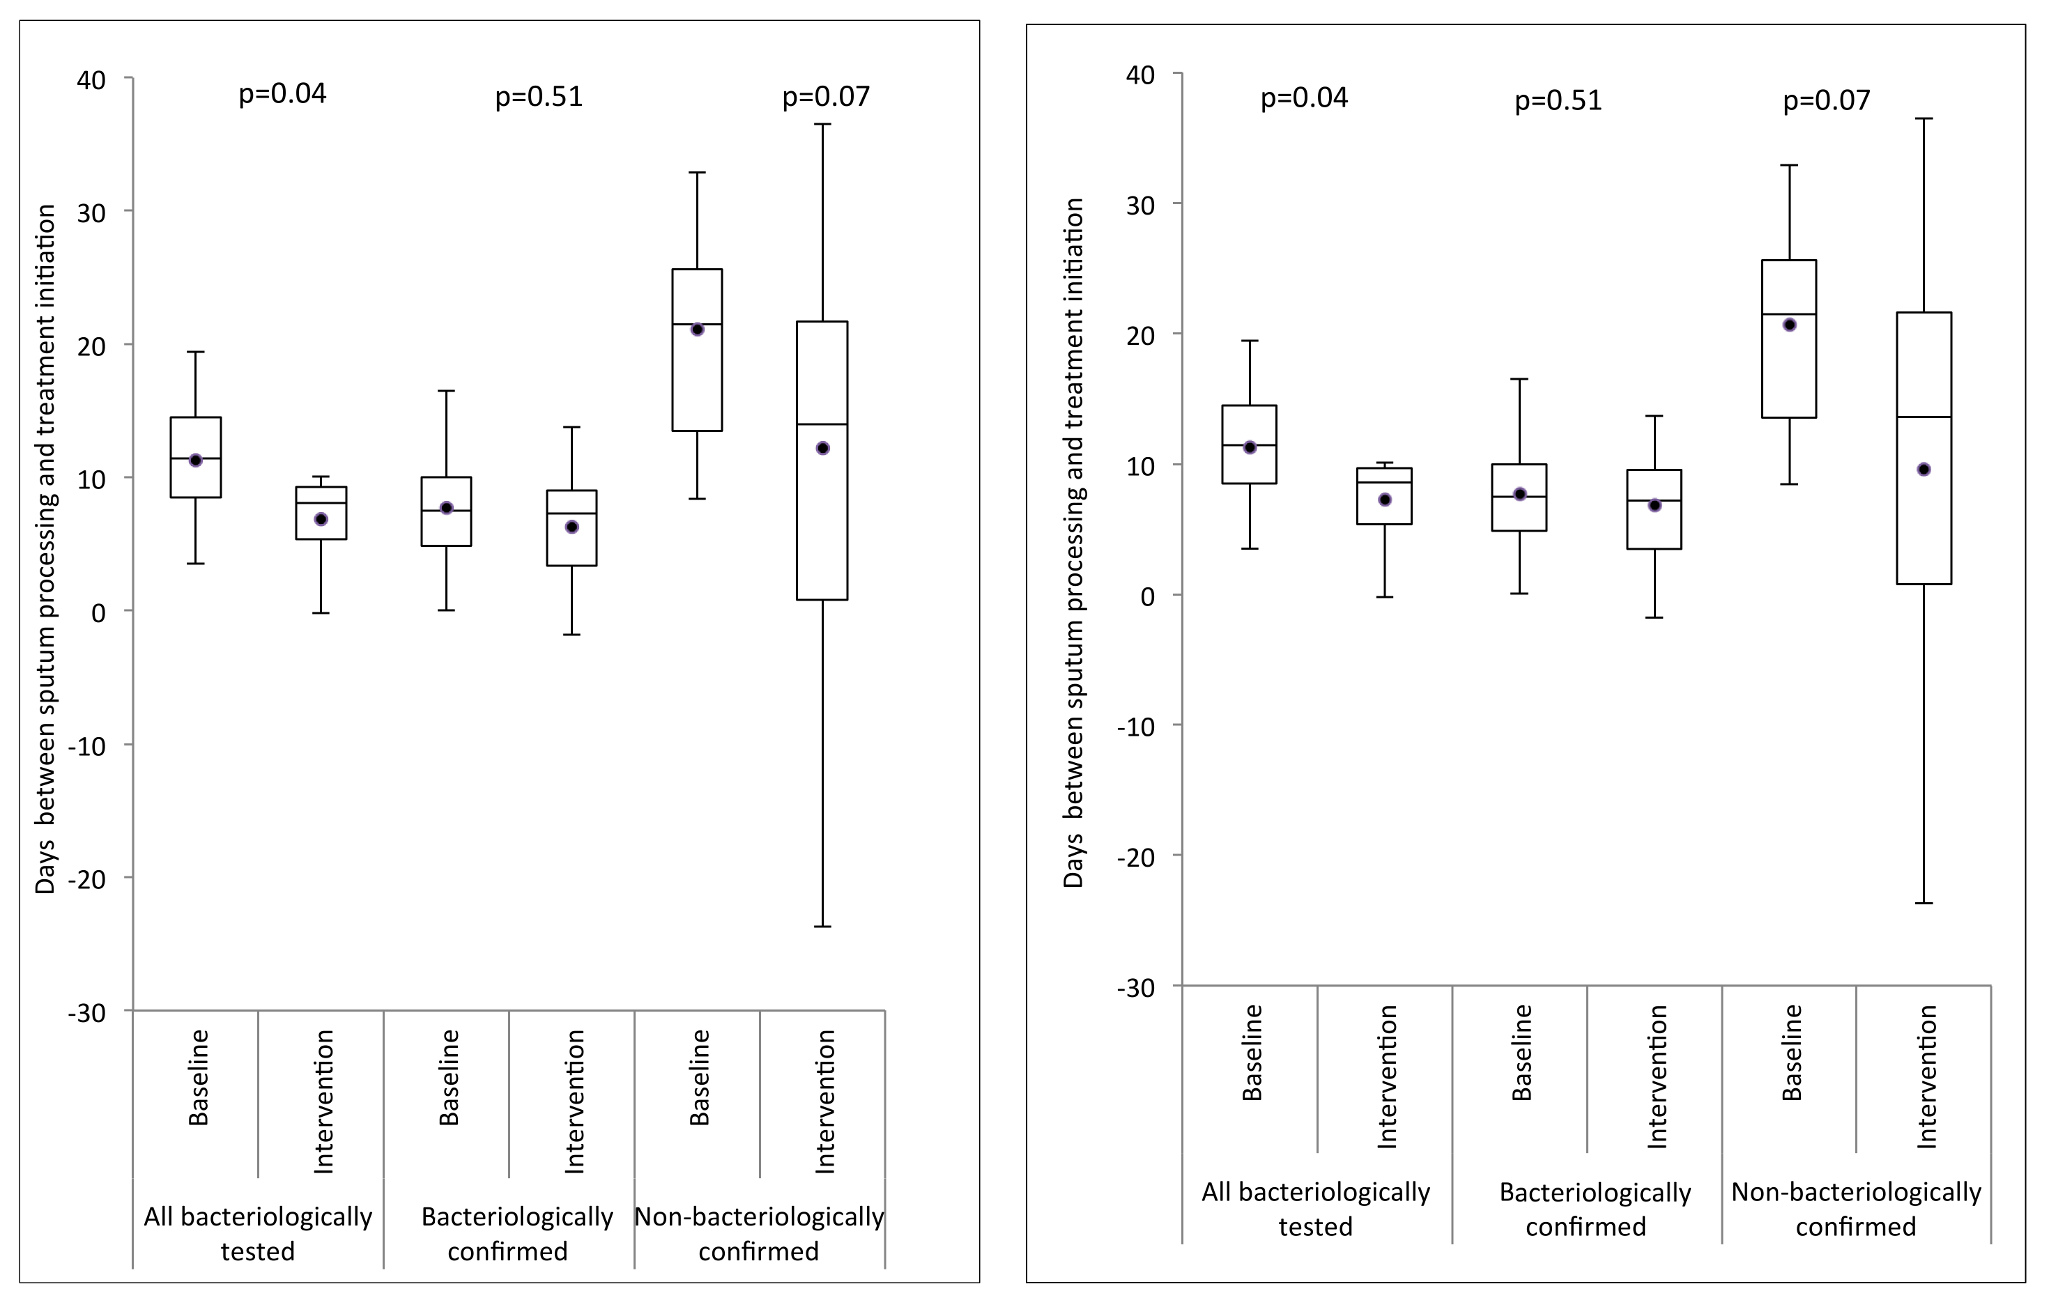 Box-and-whisker plot of cluster-averaged time interval between processing of sputum and start of first-line drug treatment in the baseline (smear examination) and intervention (Xpert MTB/RIF) arms.